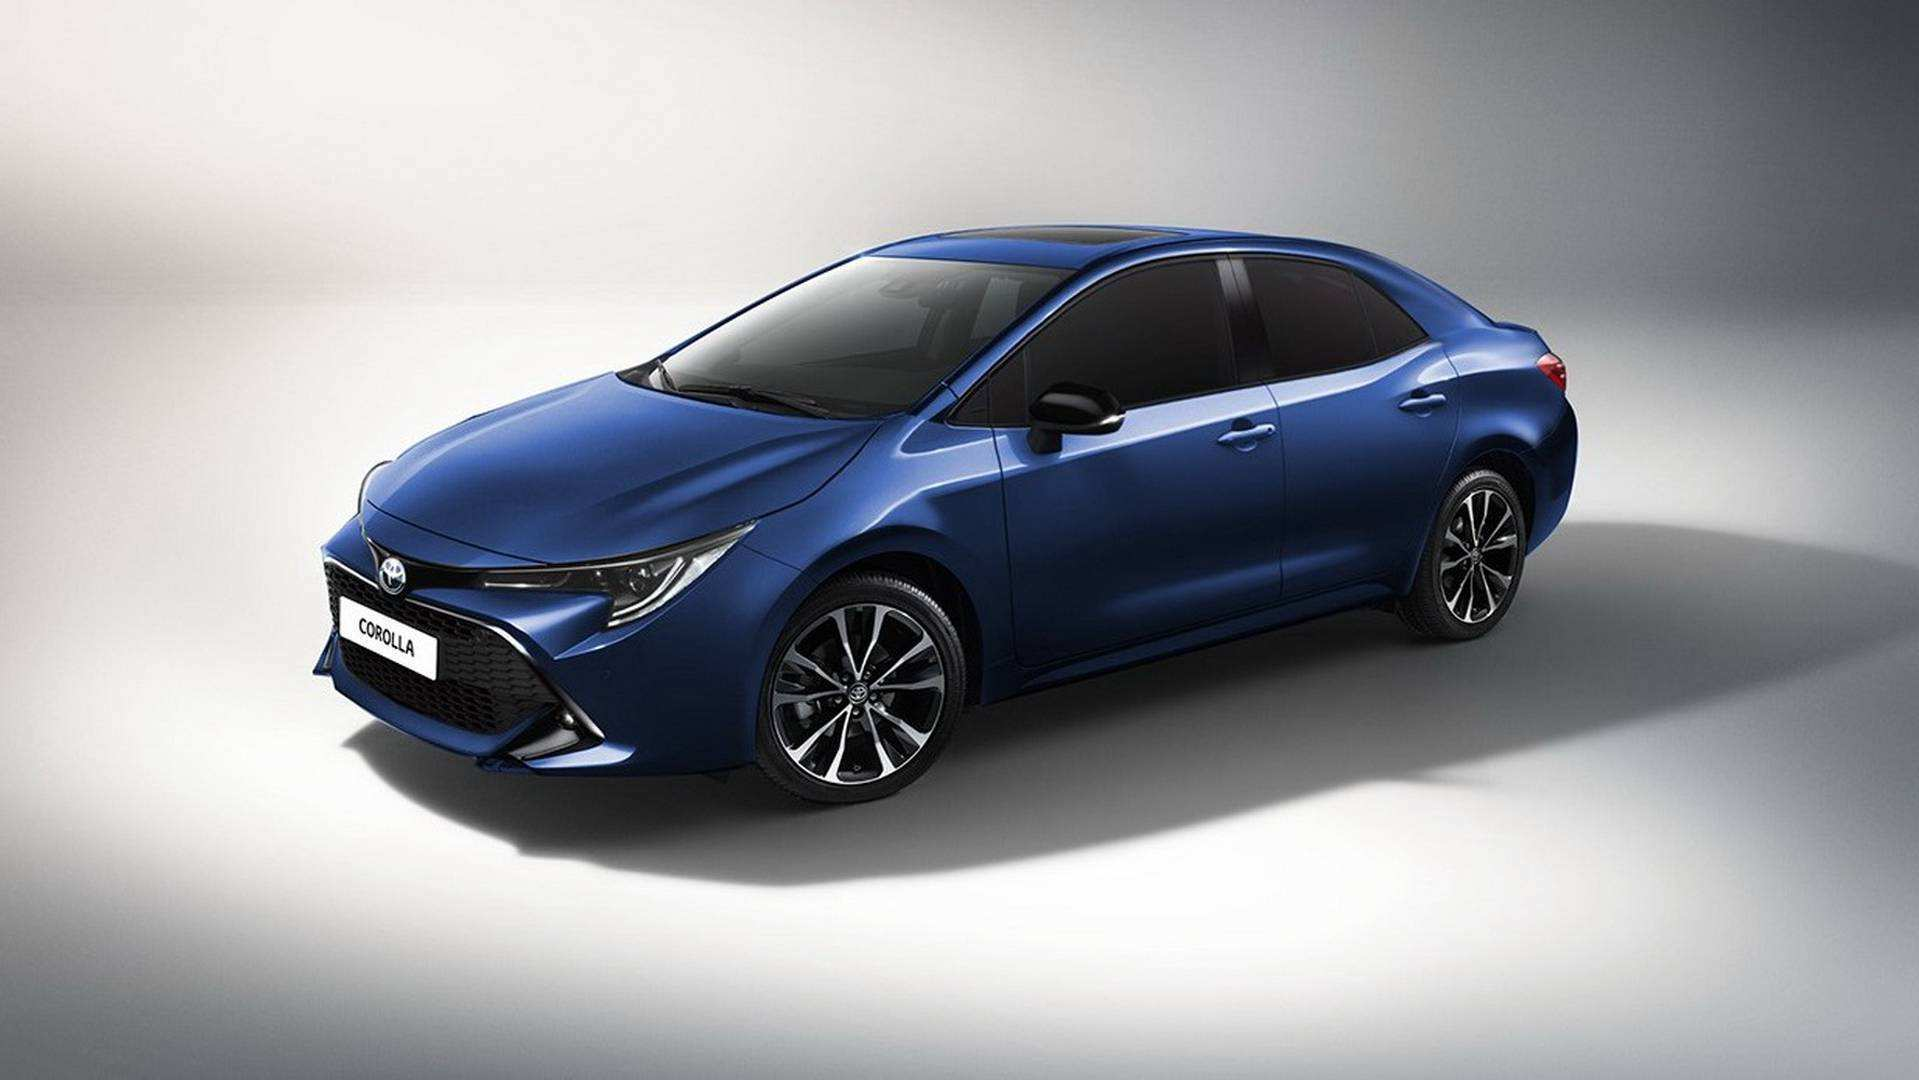 48 All New 2020 Toyota Auris Redesign